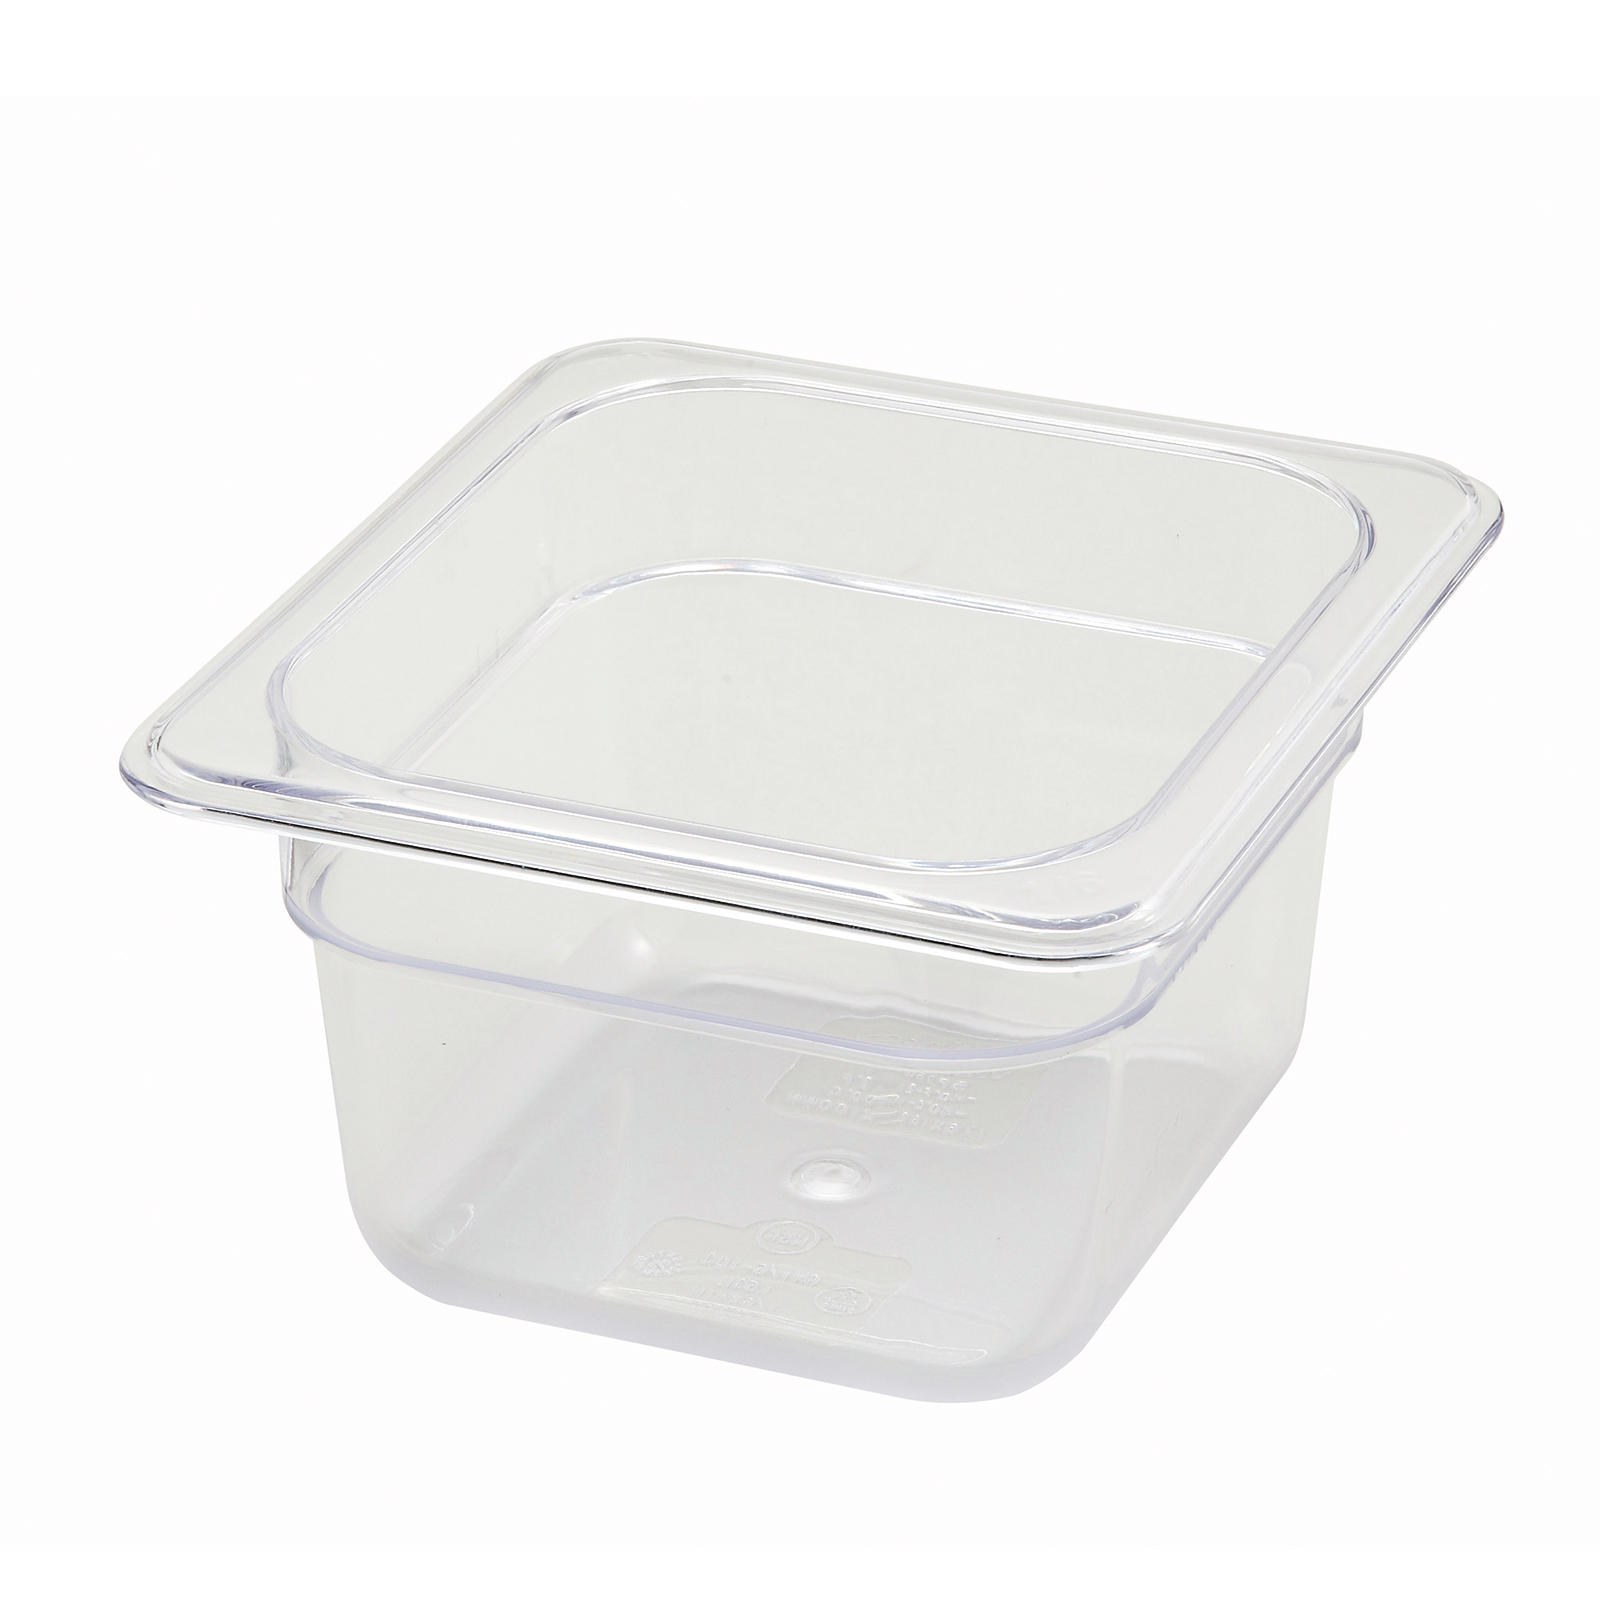 2410-036 Winco SP7604 food pan, 1/6size 4in D, clear plastic